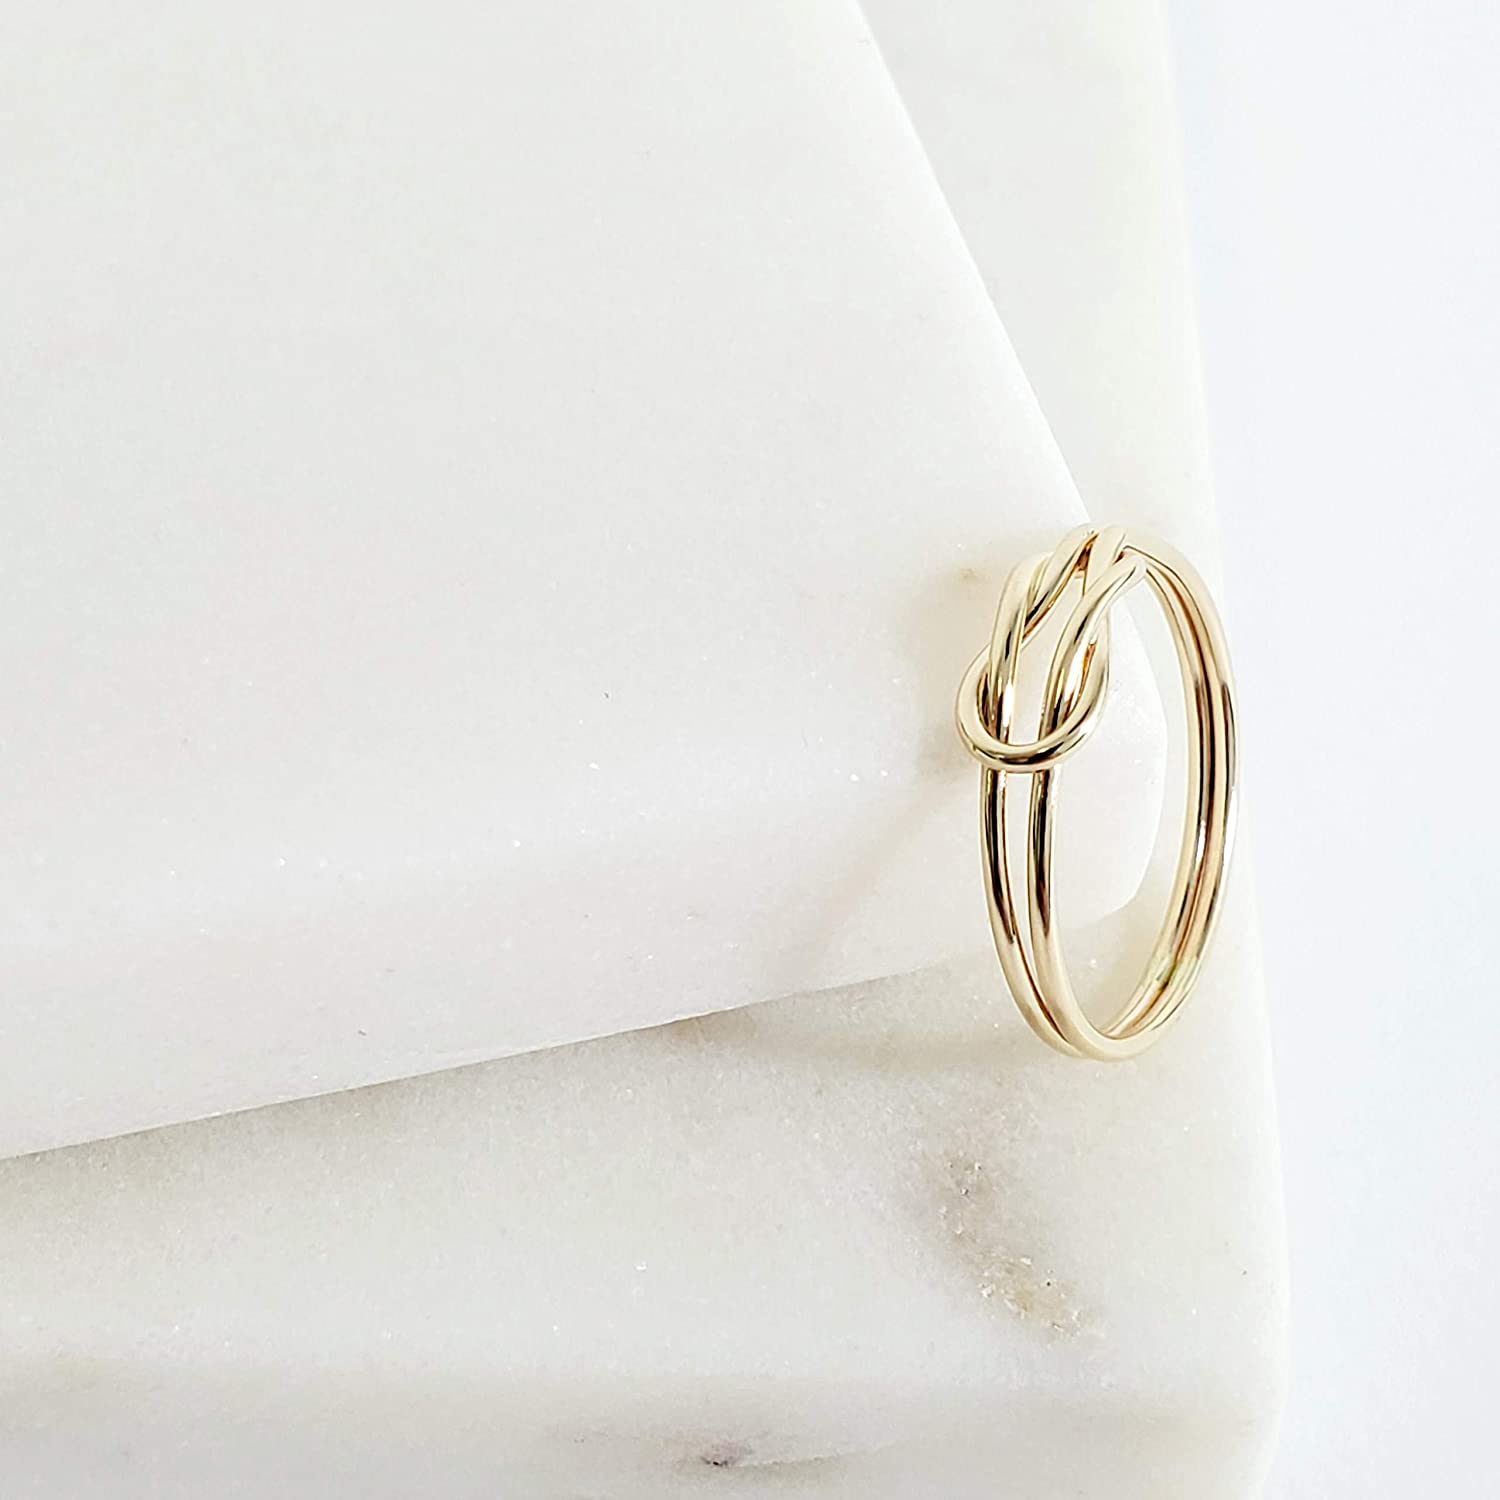 Gold Infinity Knot Ring- solid 14k gold knot ring hand tied delicate ring love knot infinity ring simple knot ring infinity knot